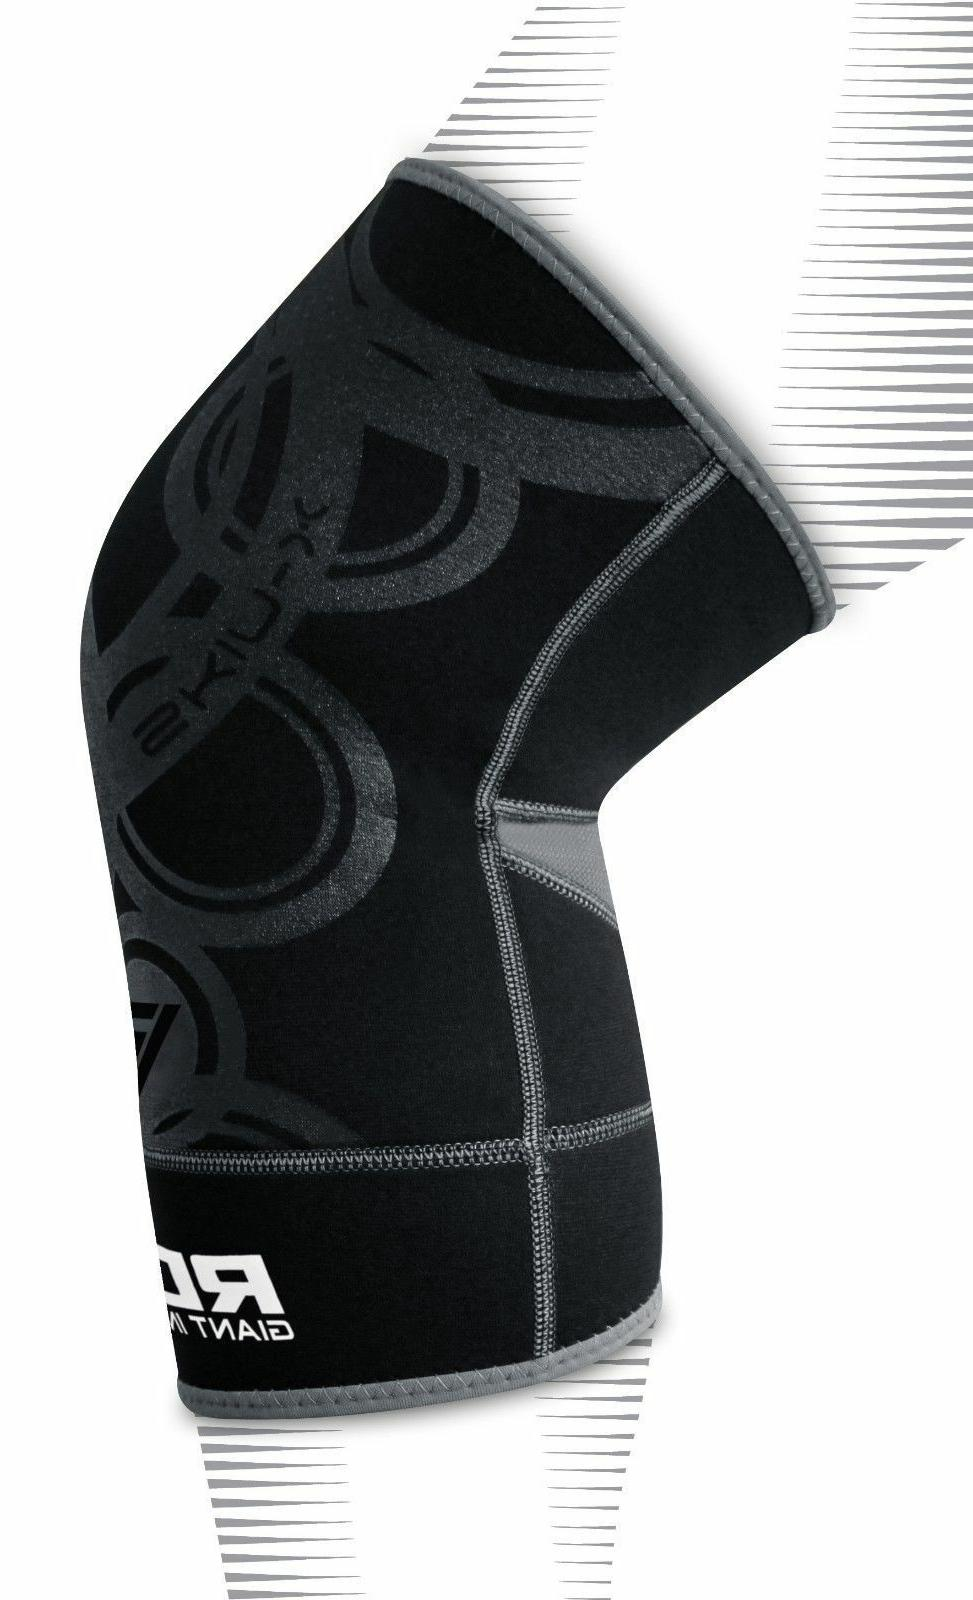 RDX Support Pads Gear Leg Sleeves Sports